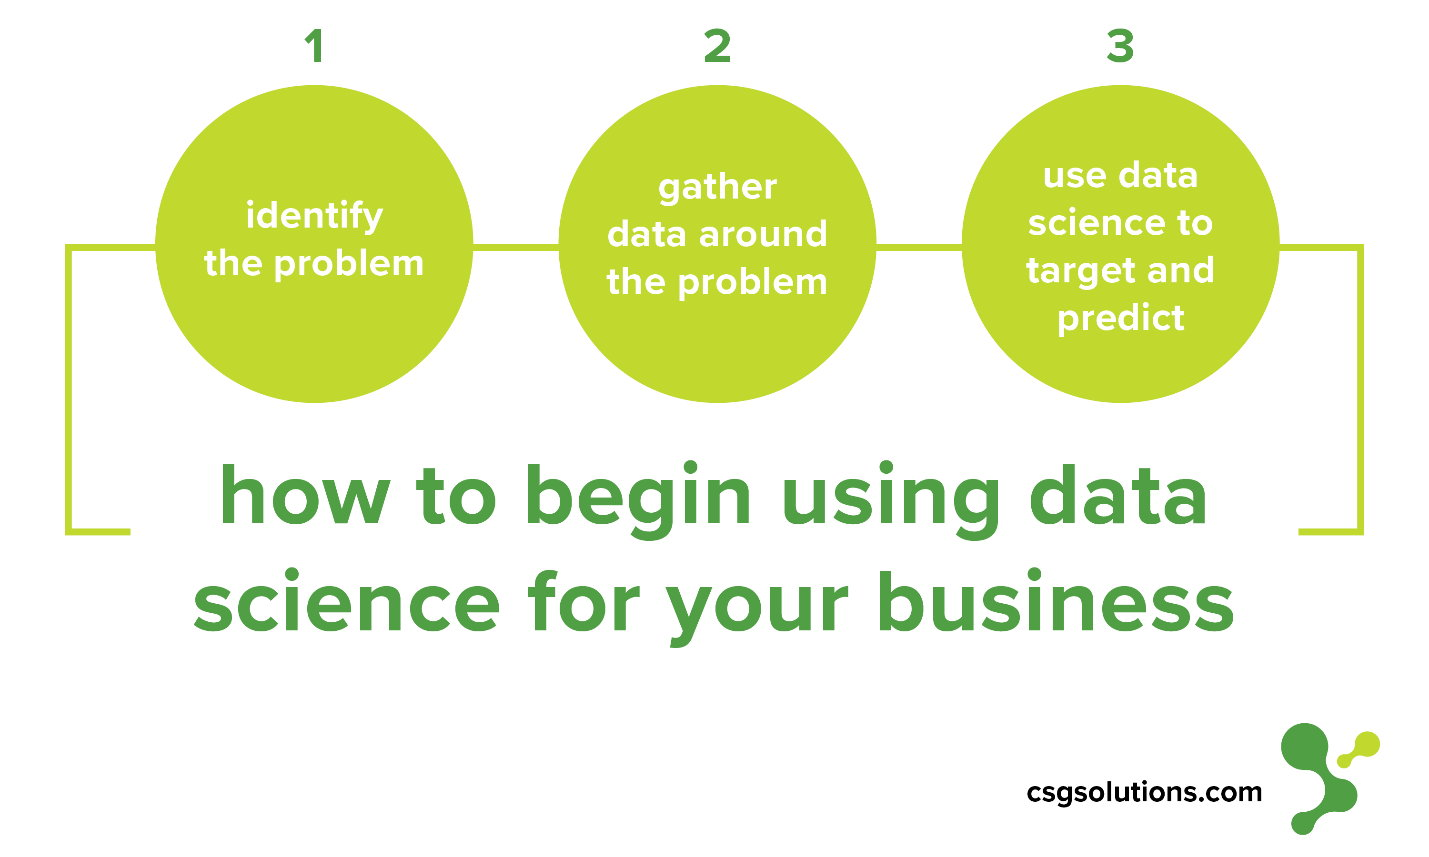 how to begin using data science